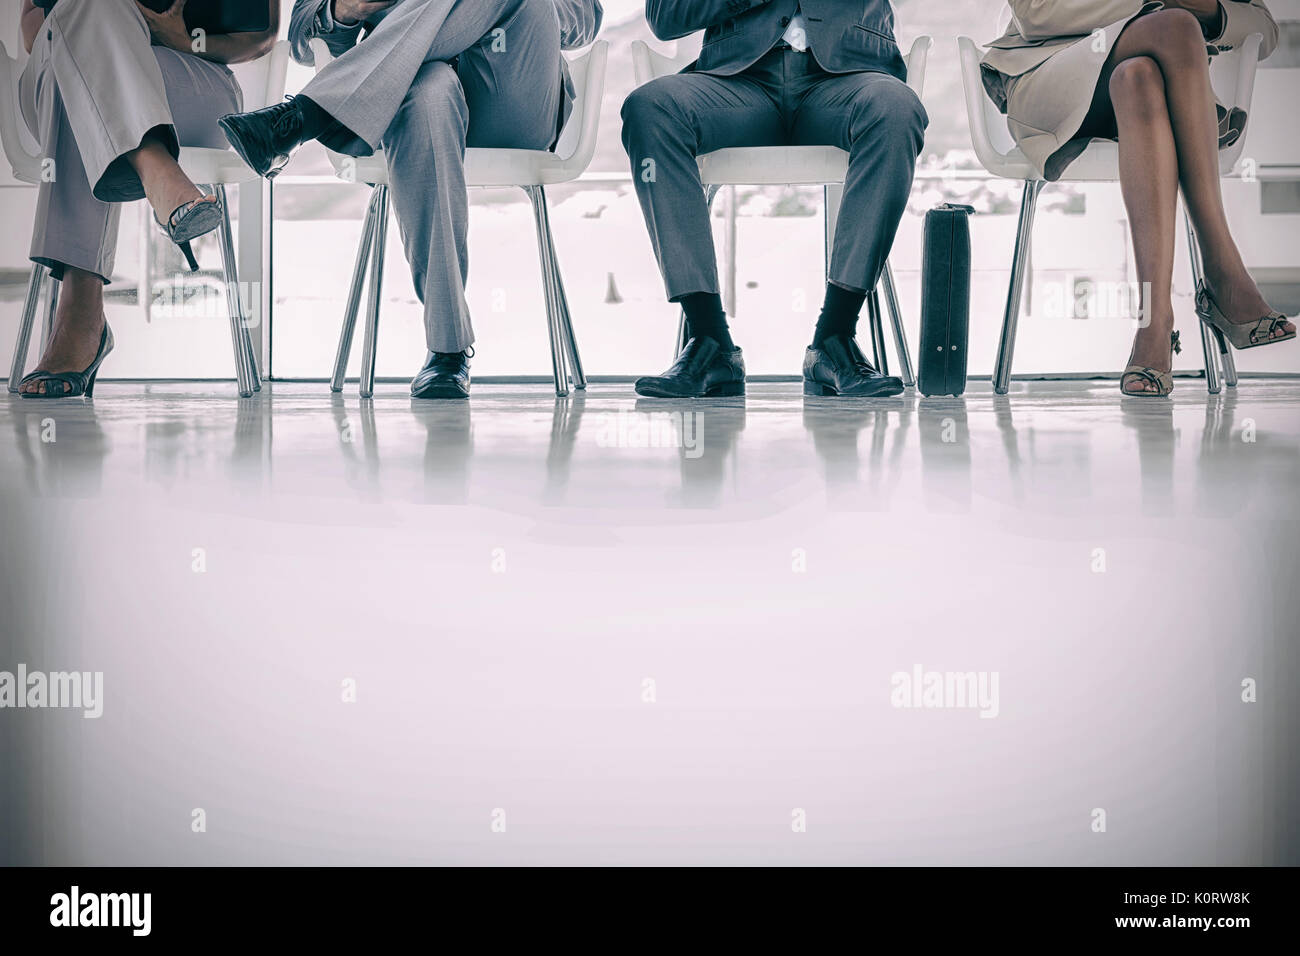 Waiting room with business people sitting in line at corridor - Stock Image